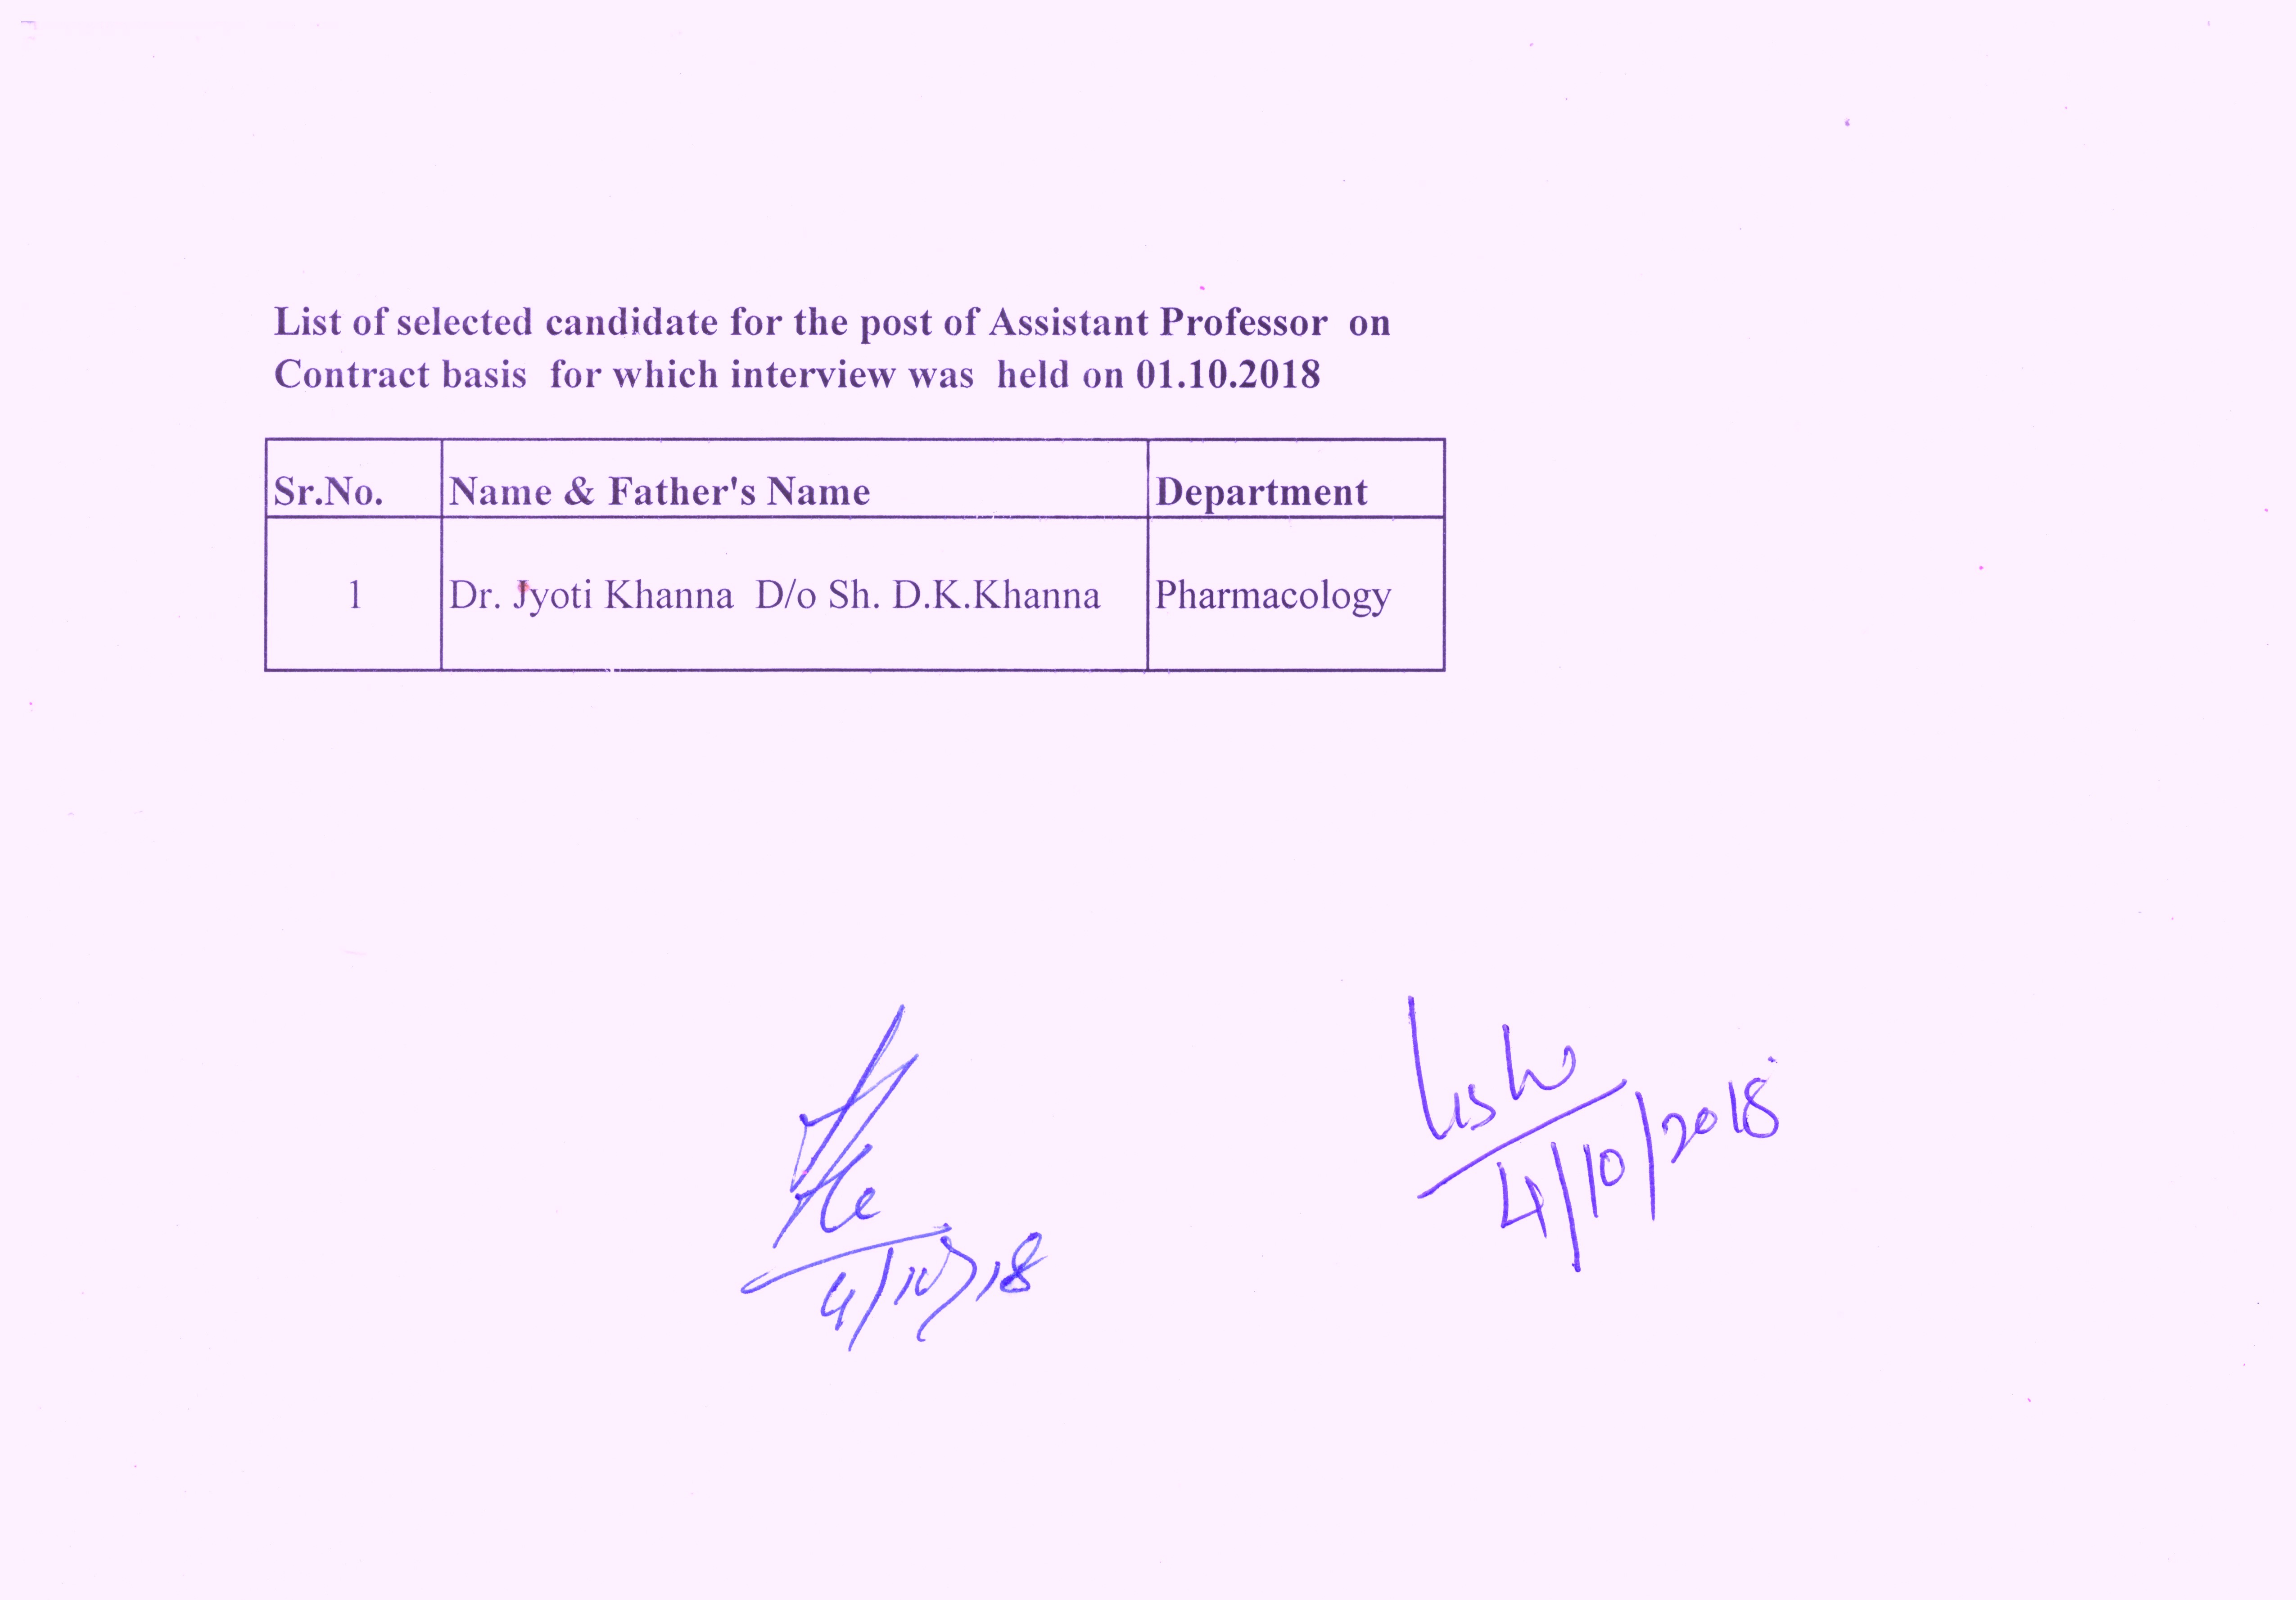 list of selected candidates for the post of assistant professor on contract basis for which interview was held on 01102018